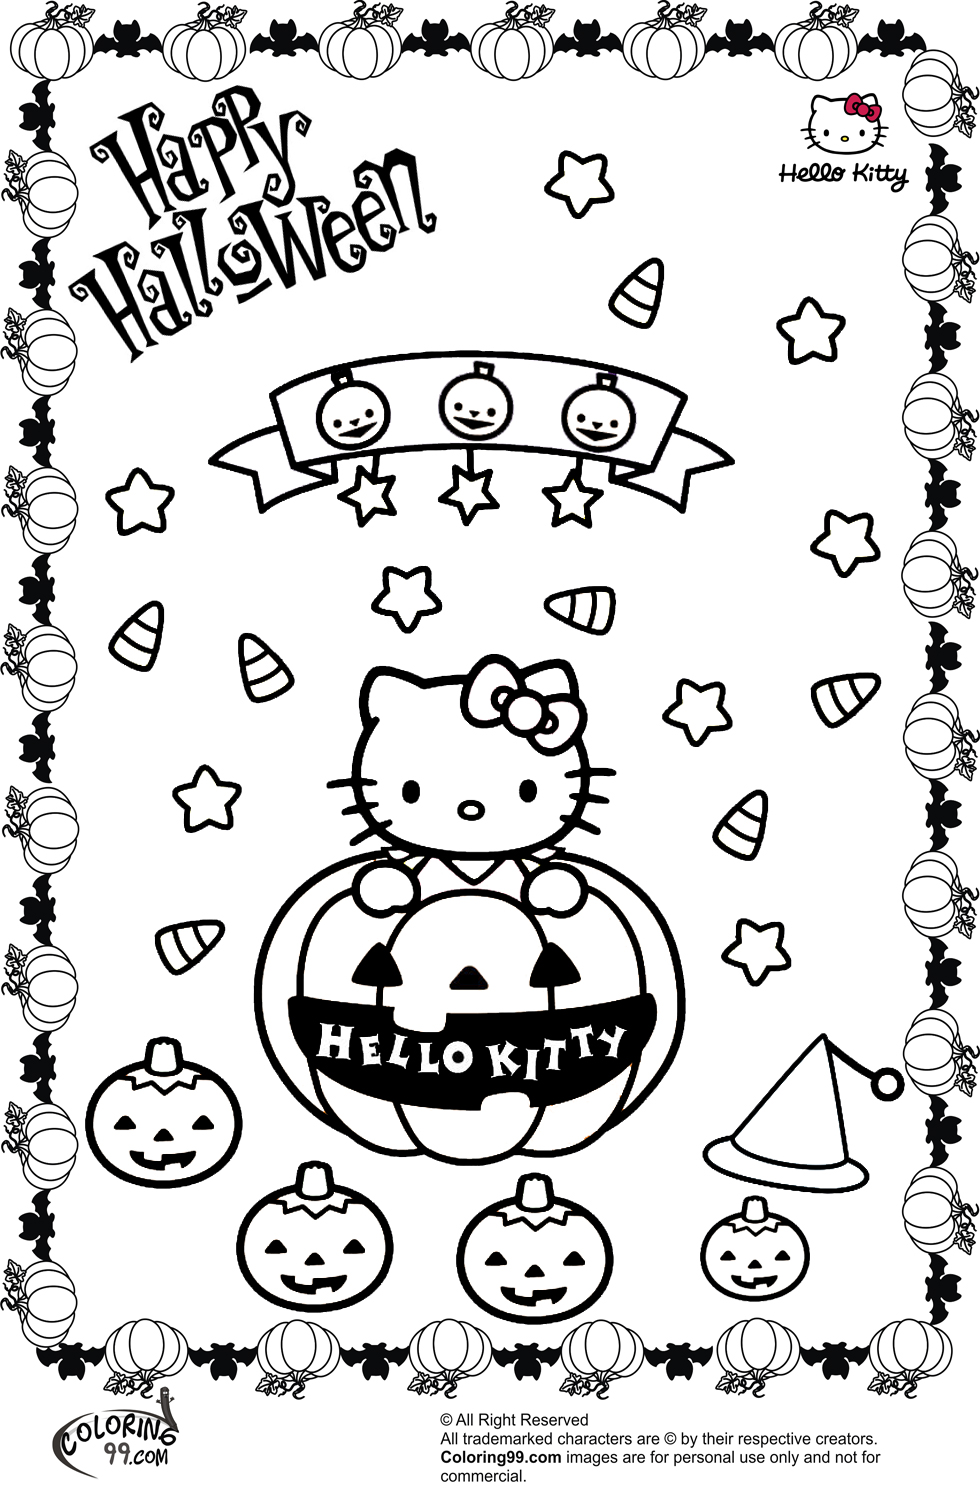 hello kitty team colors